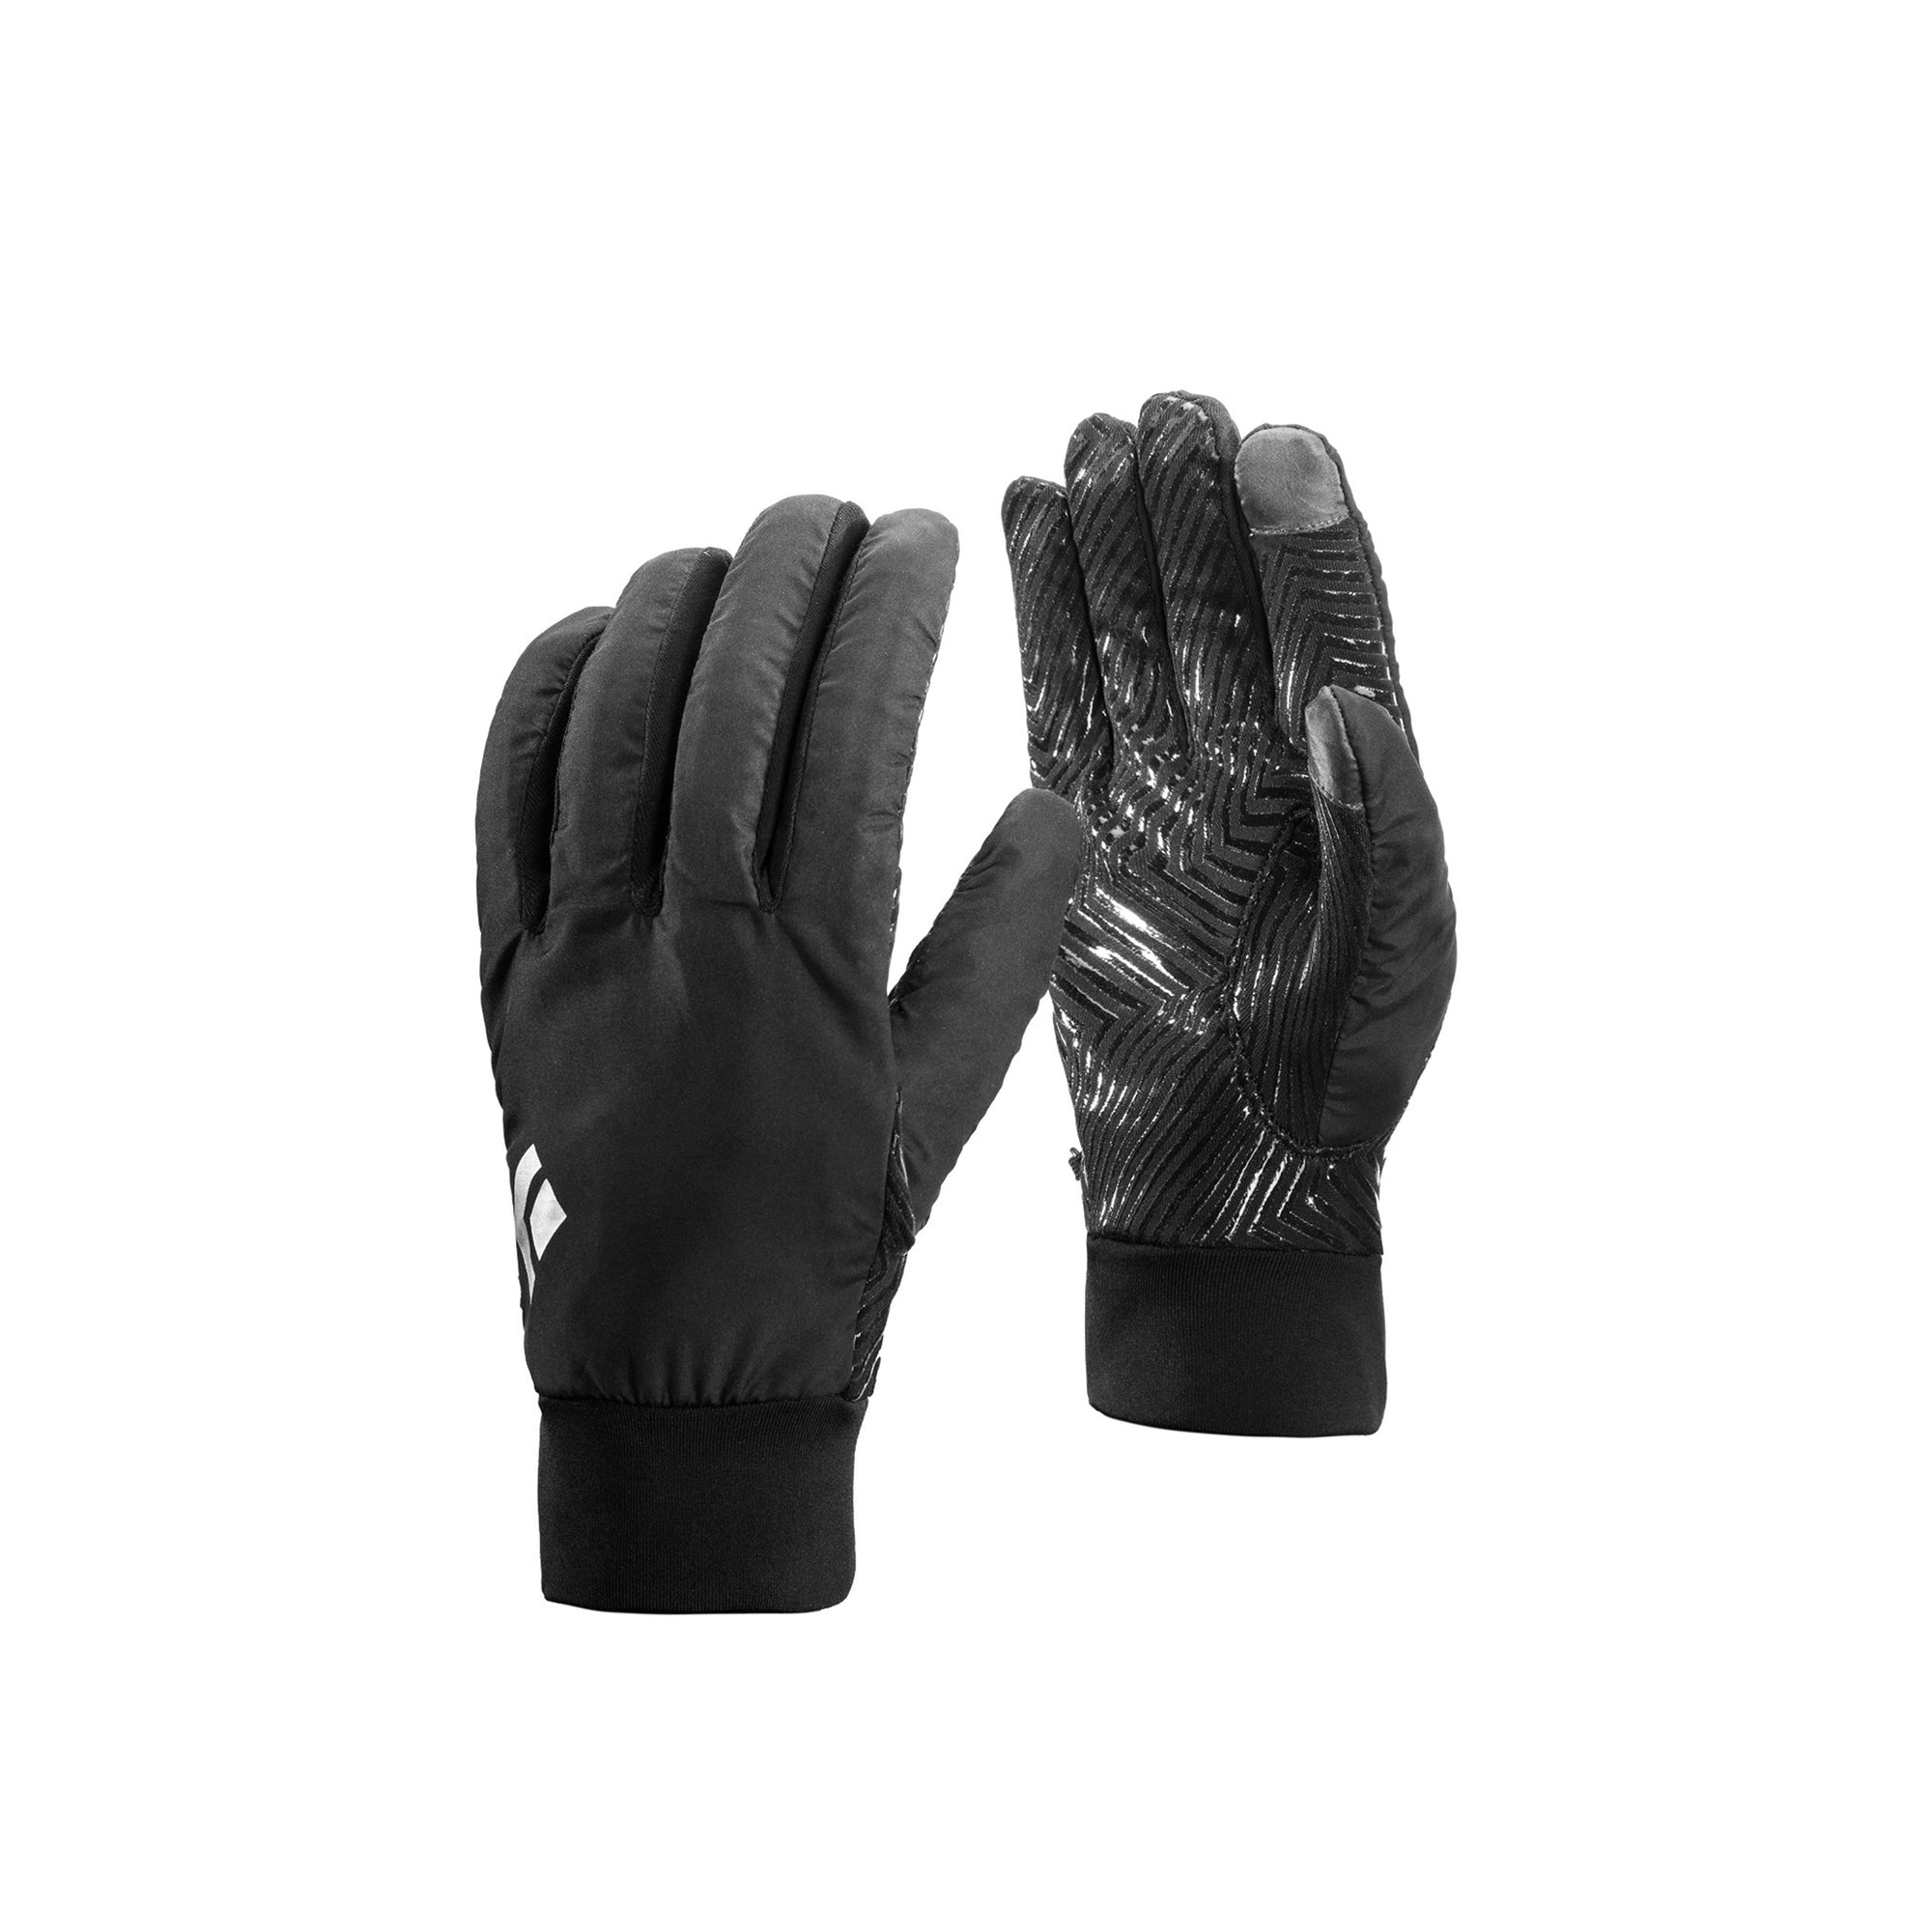 a pair of warm, black gloves